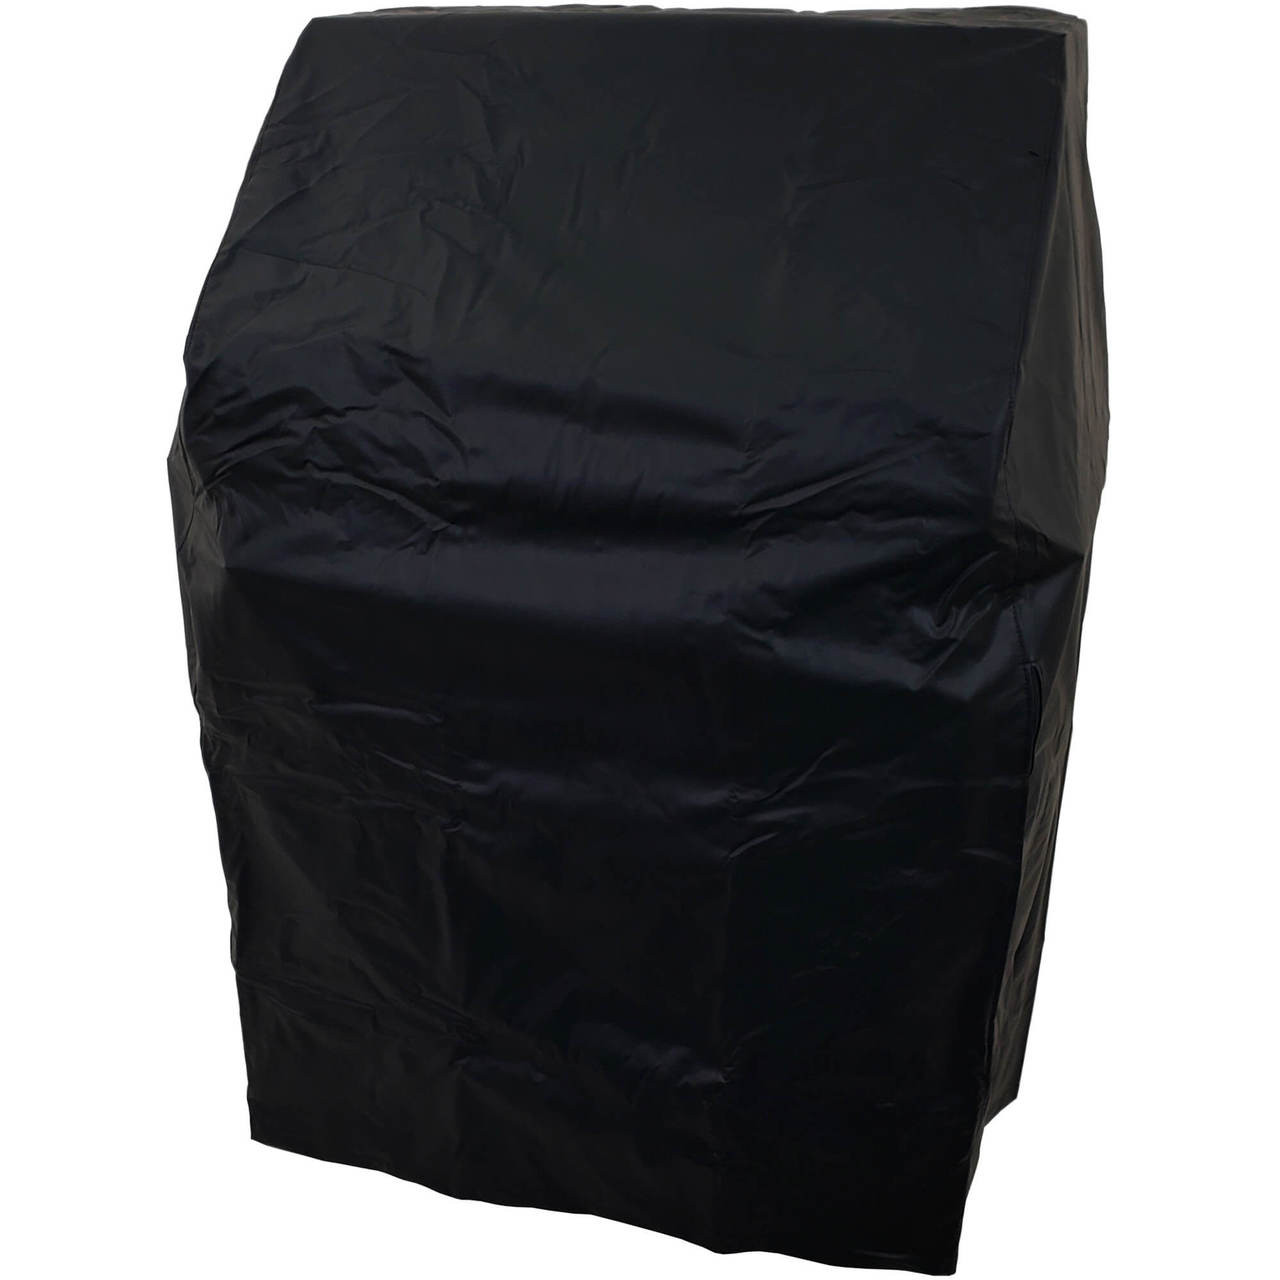 "Cover for 30"" Cart Grill, Item #SOL-HC-30C"